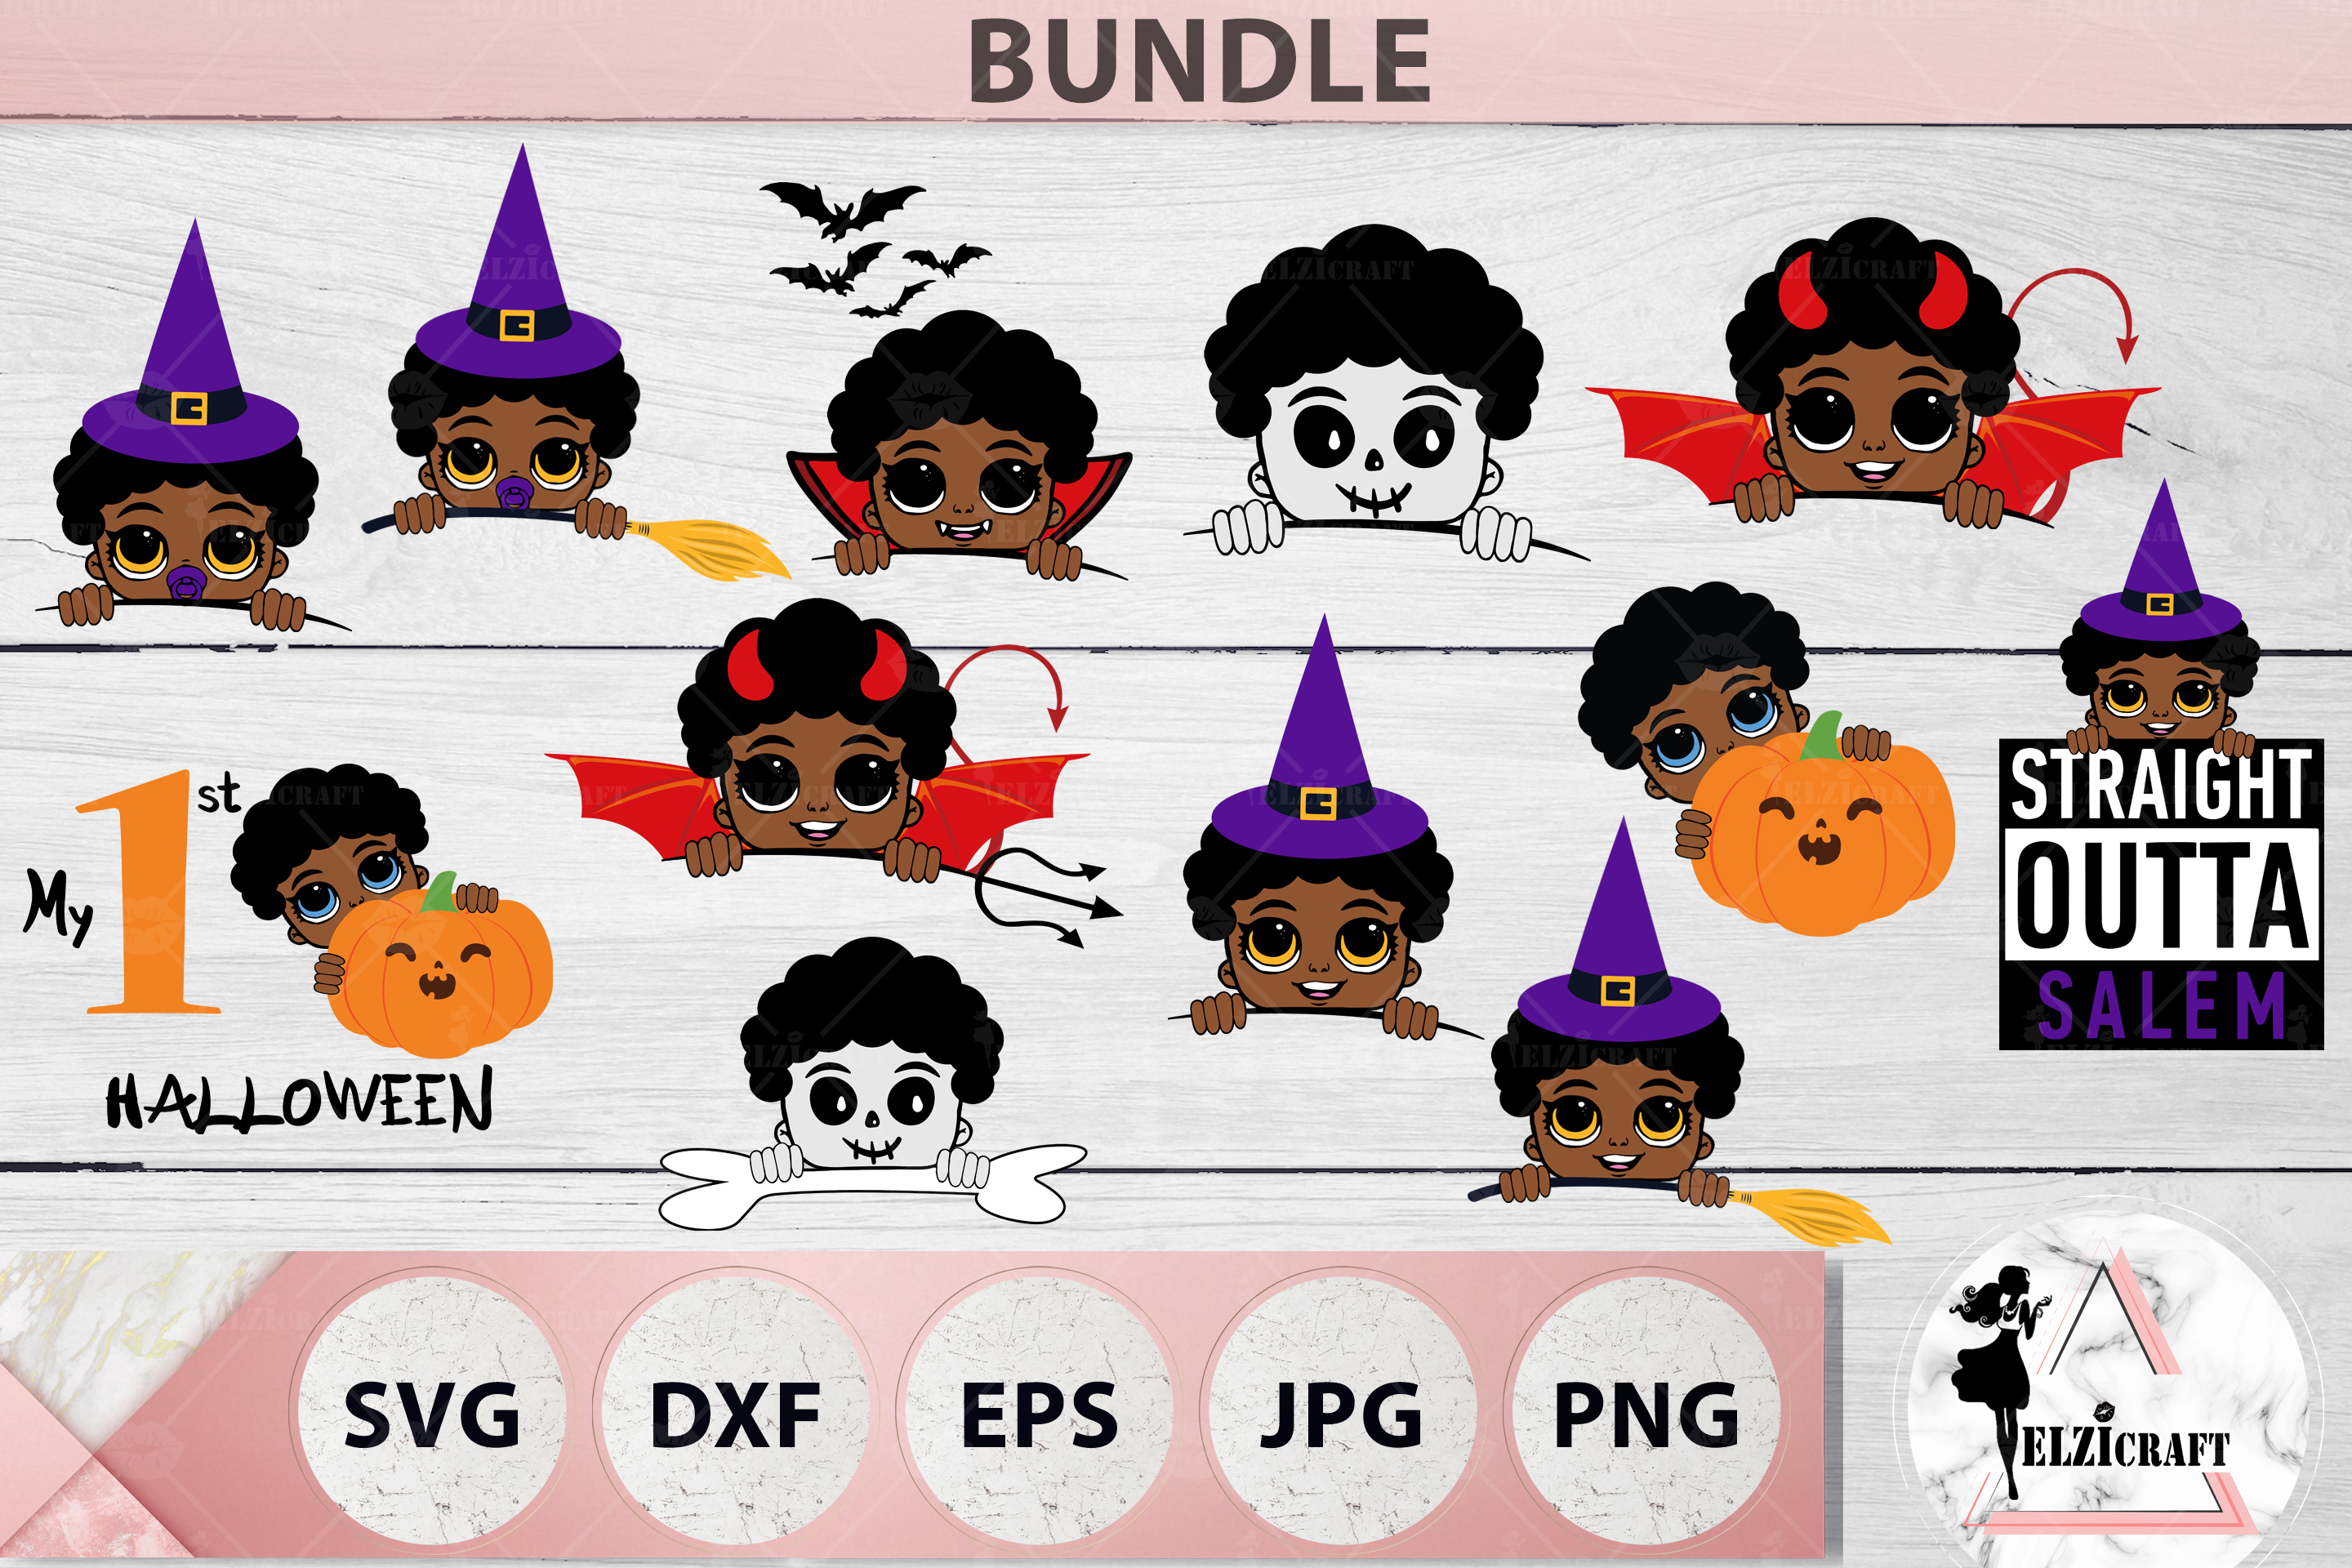 HALLOWEEN AFRO BUNDLE SVG Cut Files example image 2